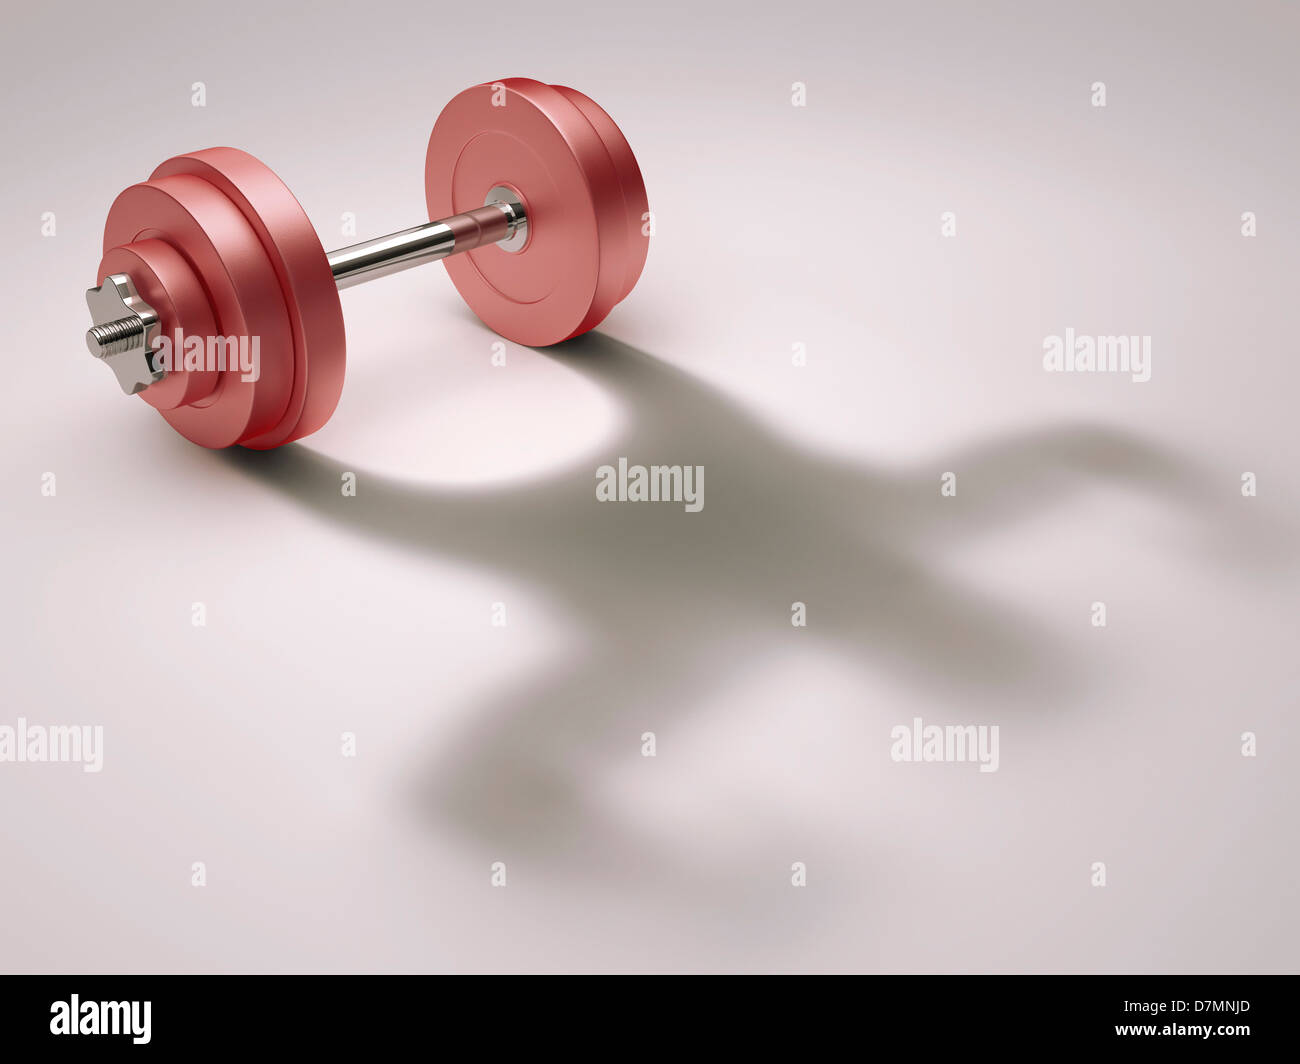 Strength, conceptual artwork - Stock Image